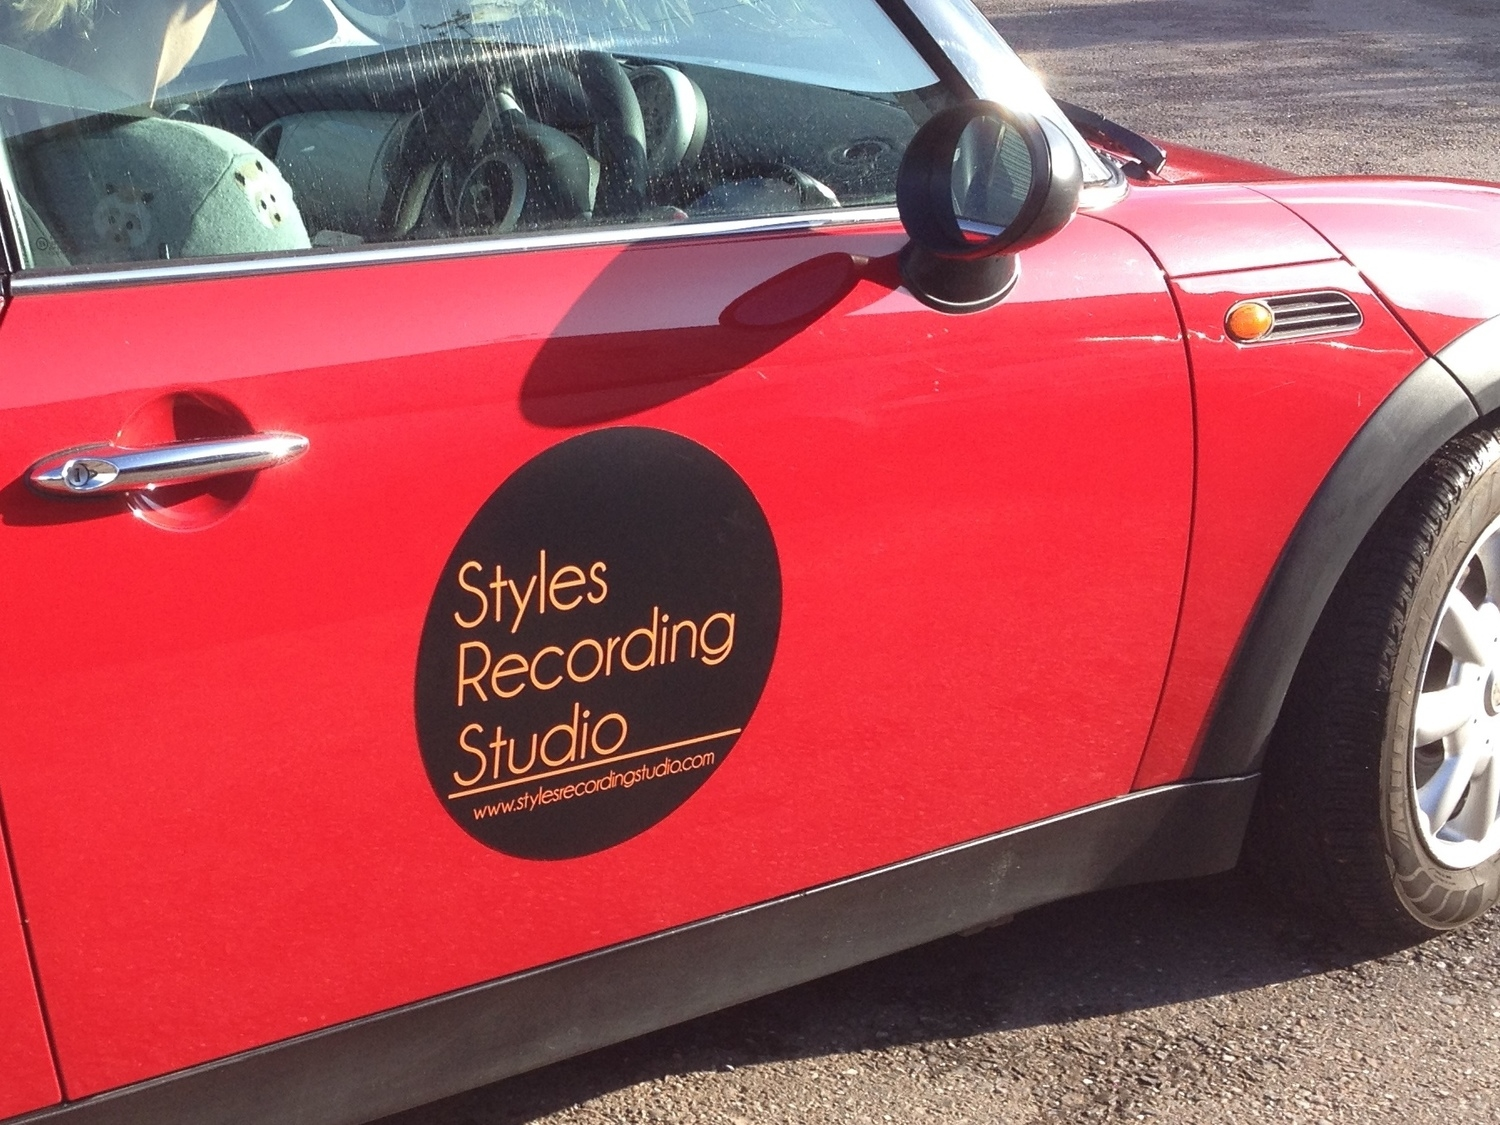 The new promo car is out and about in the south west